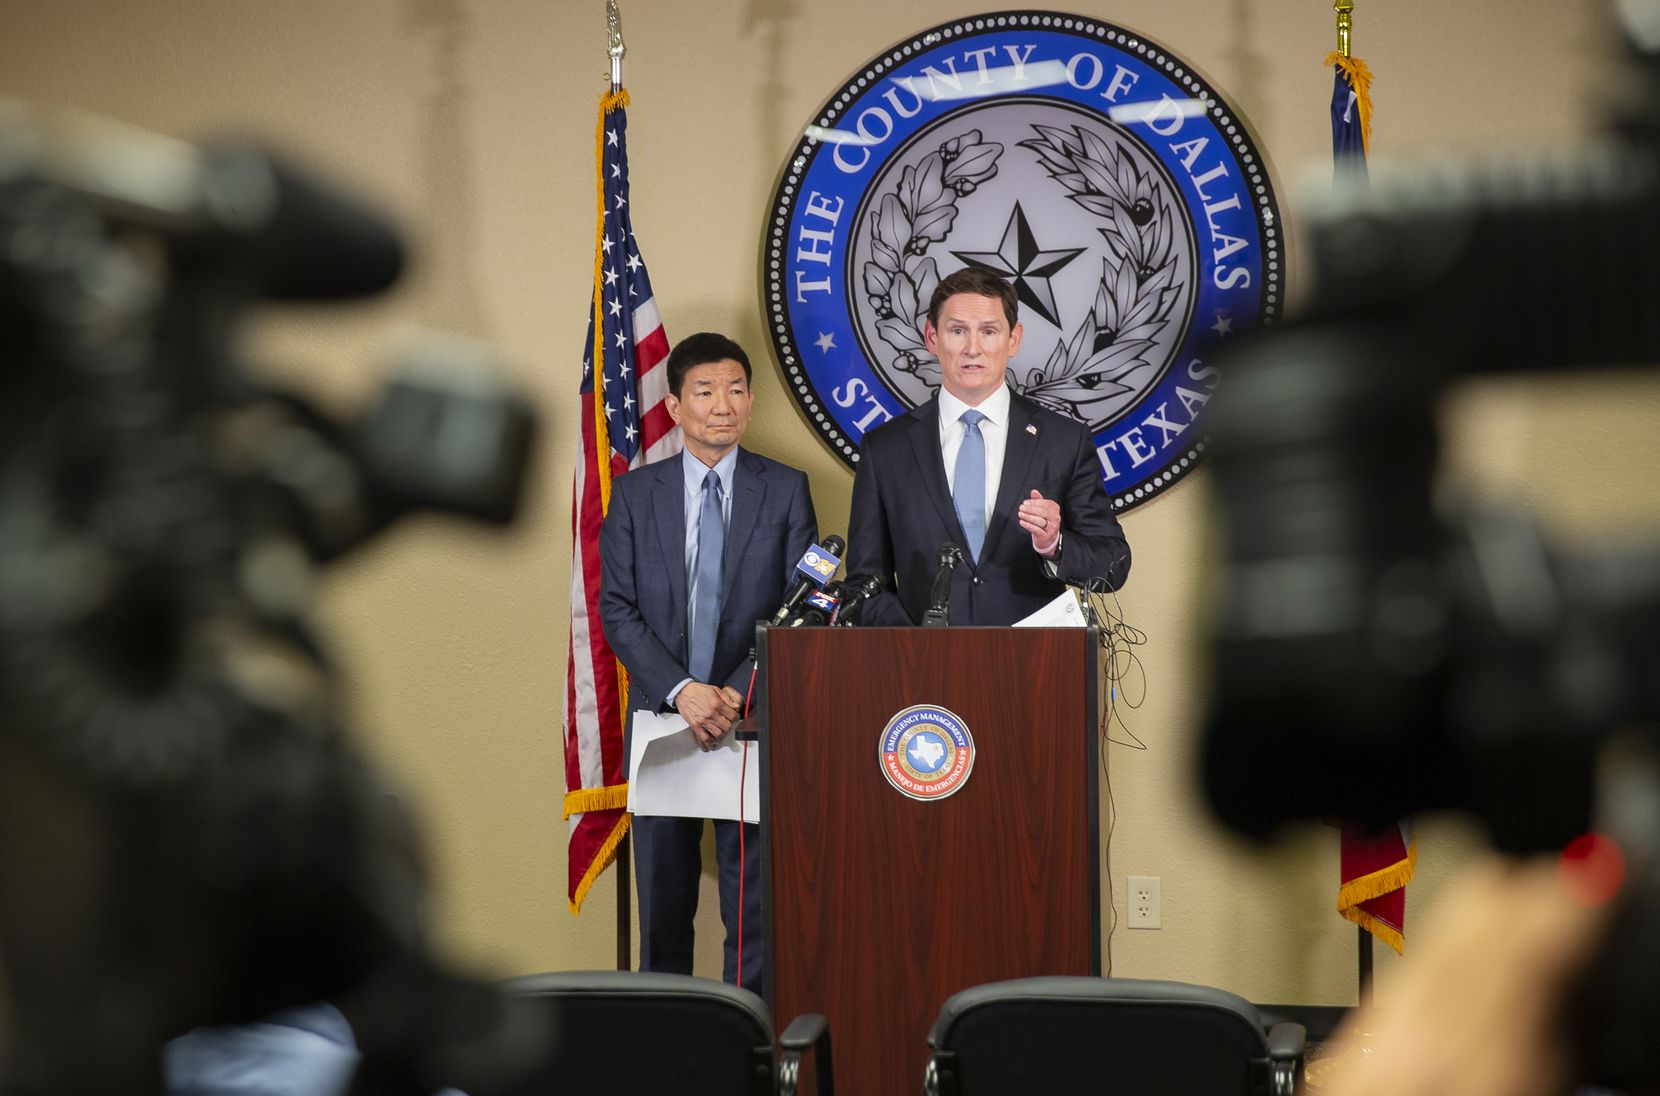 Dallas County Judge Clay Jenkins (right) and Dr. Philip Huang, director of Dallas County Health and Human Services, ordered bars and restaurants to shut down throughout the area to help stem the new coronavirus at a news conference on March 16, 2020, in Dallas.